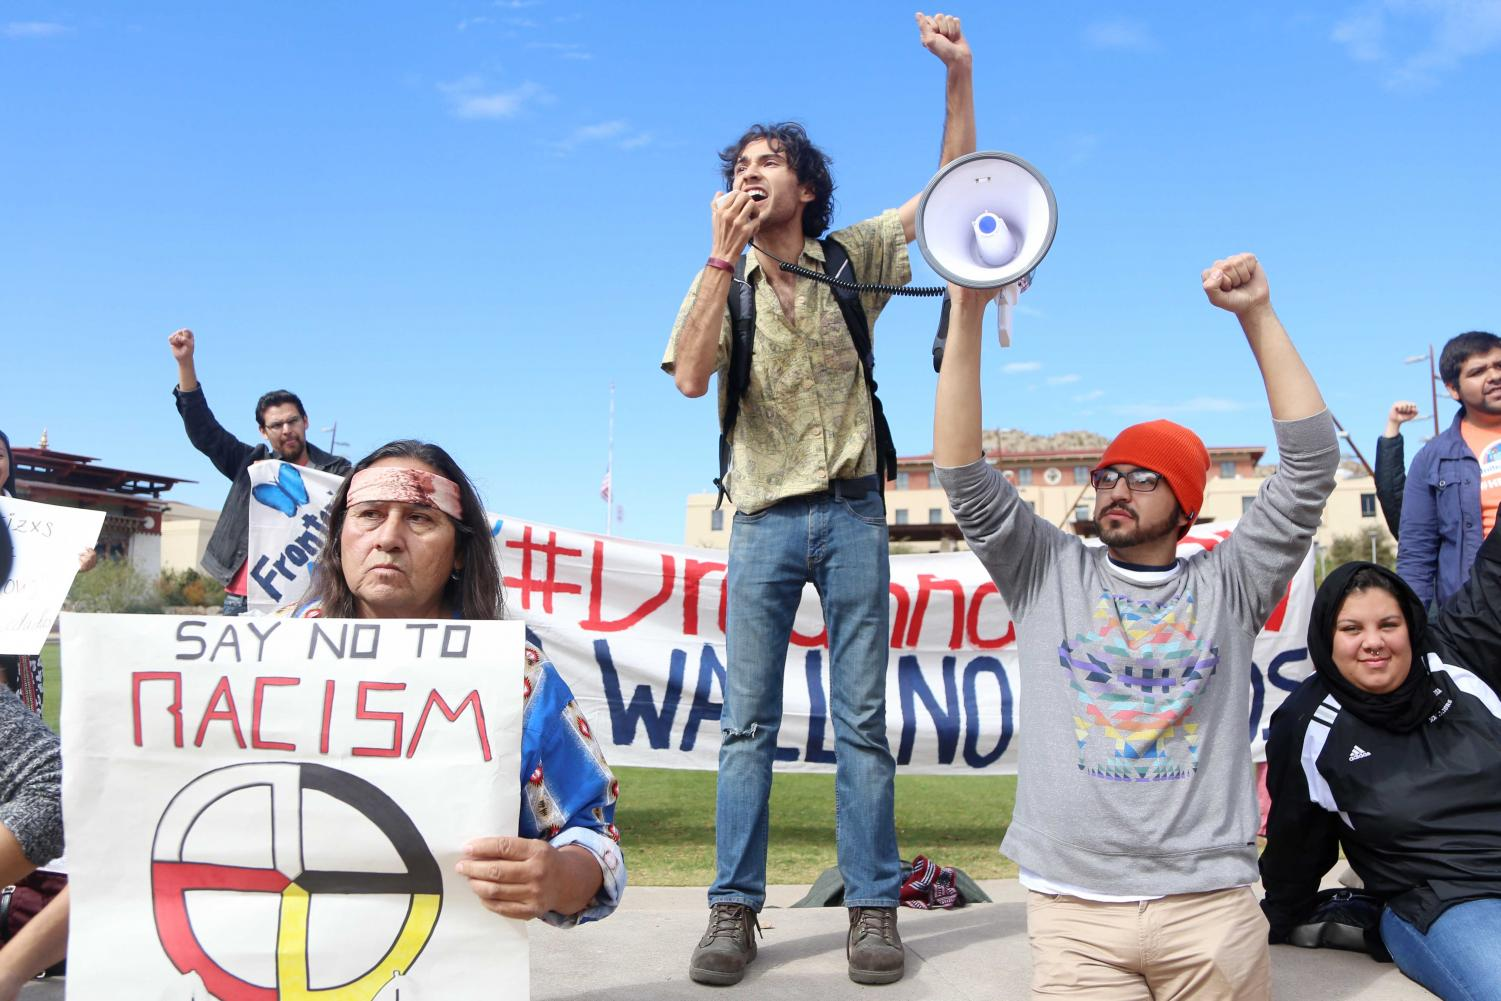 Andrew+Torres%2C+a+sophomore+majoring+in+anthropology%2C+volunteered+to+speak+at+the+protest.+